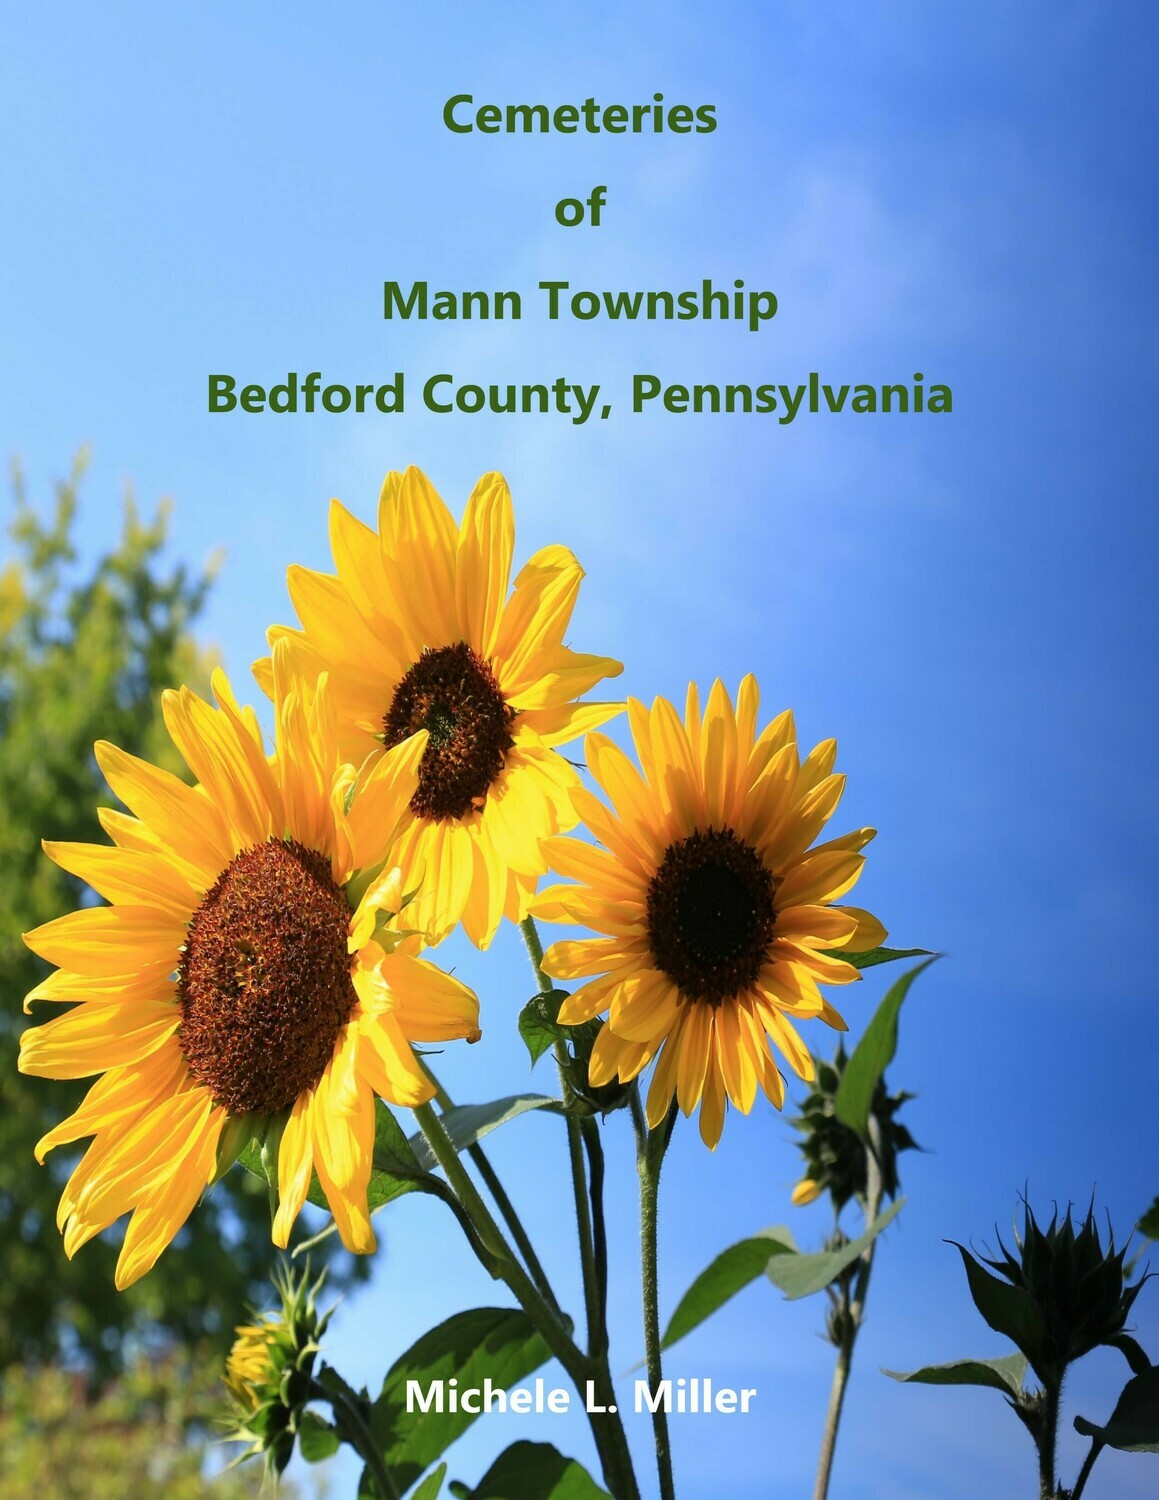 Cemeteries of Mann Township, Bedford County, Pennsylvania